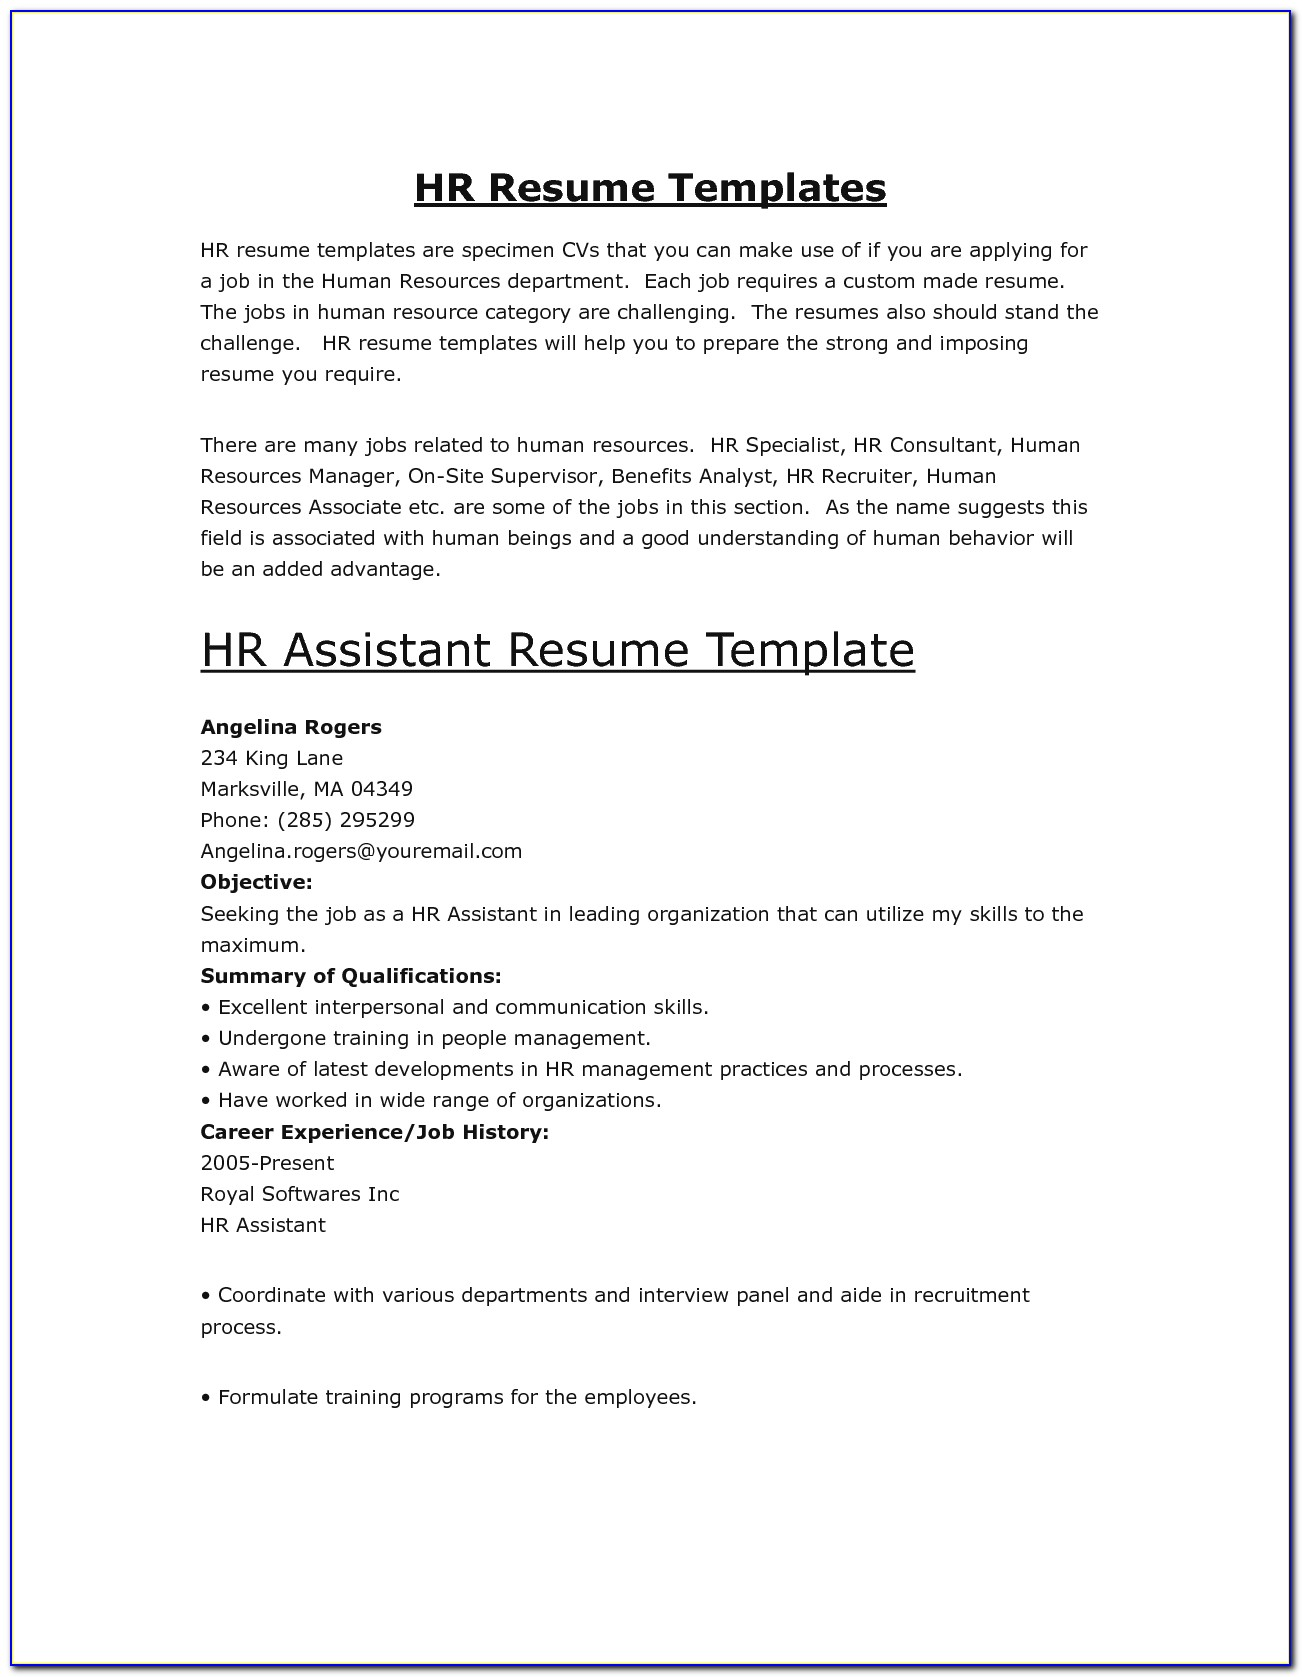 Sample Hr Assistant Resume Human Resources Assistant Resume Sample Human Resources